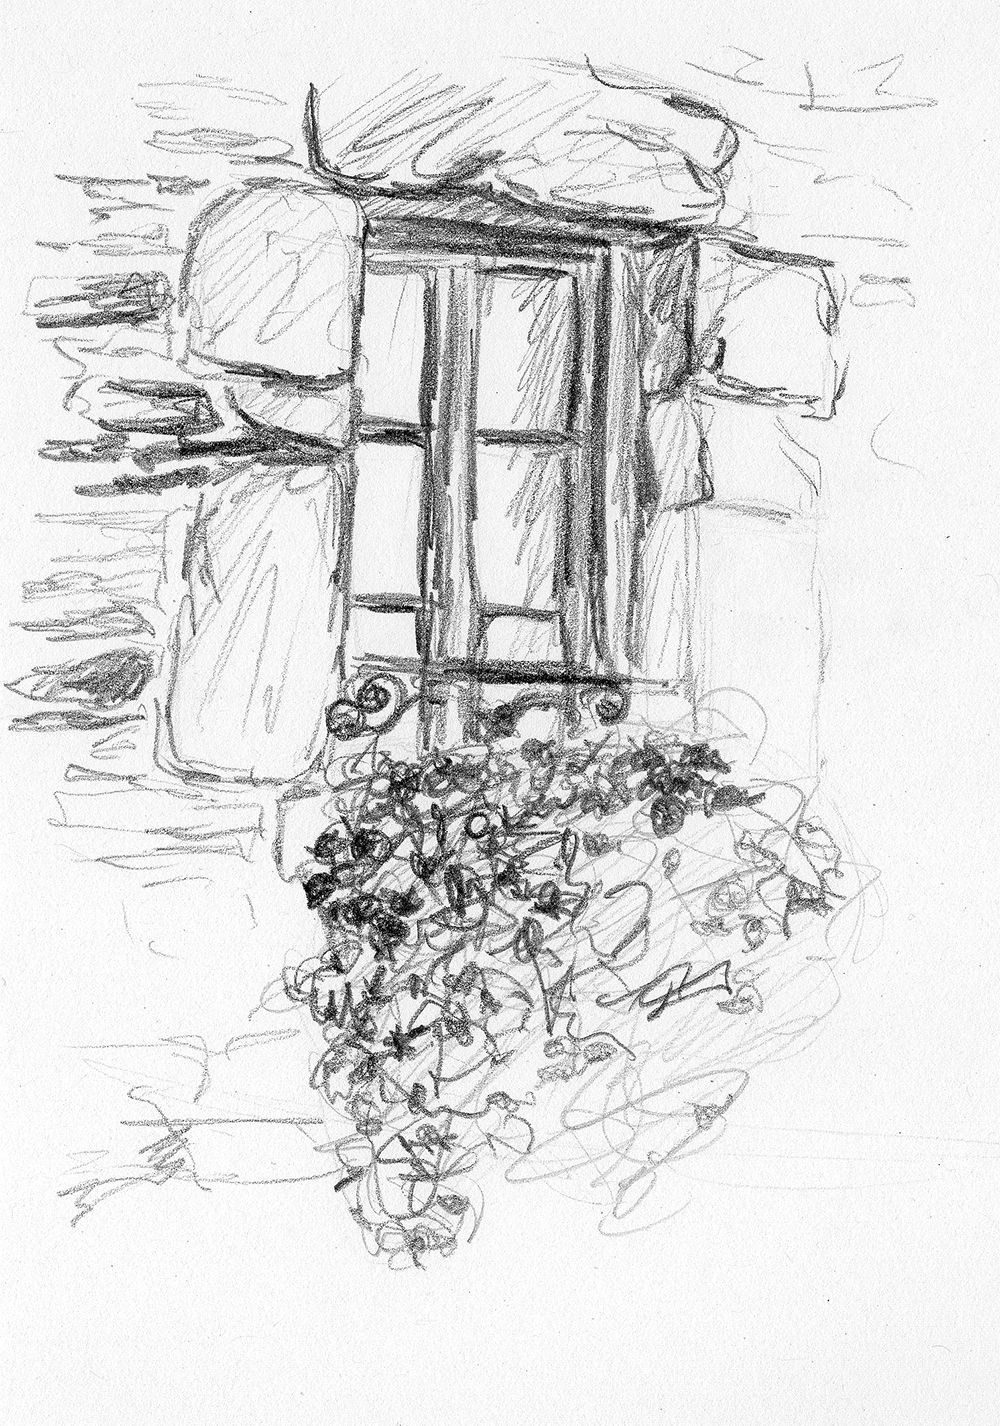 Quick Sketch of a pretty window with flowers